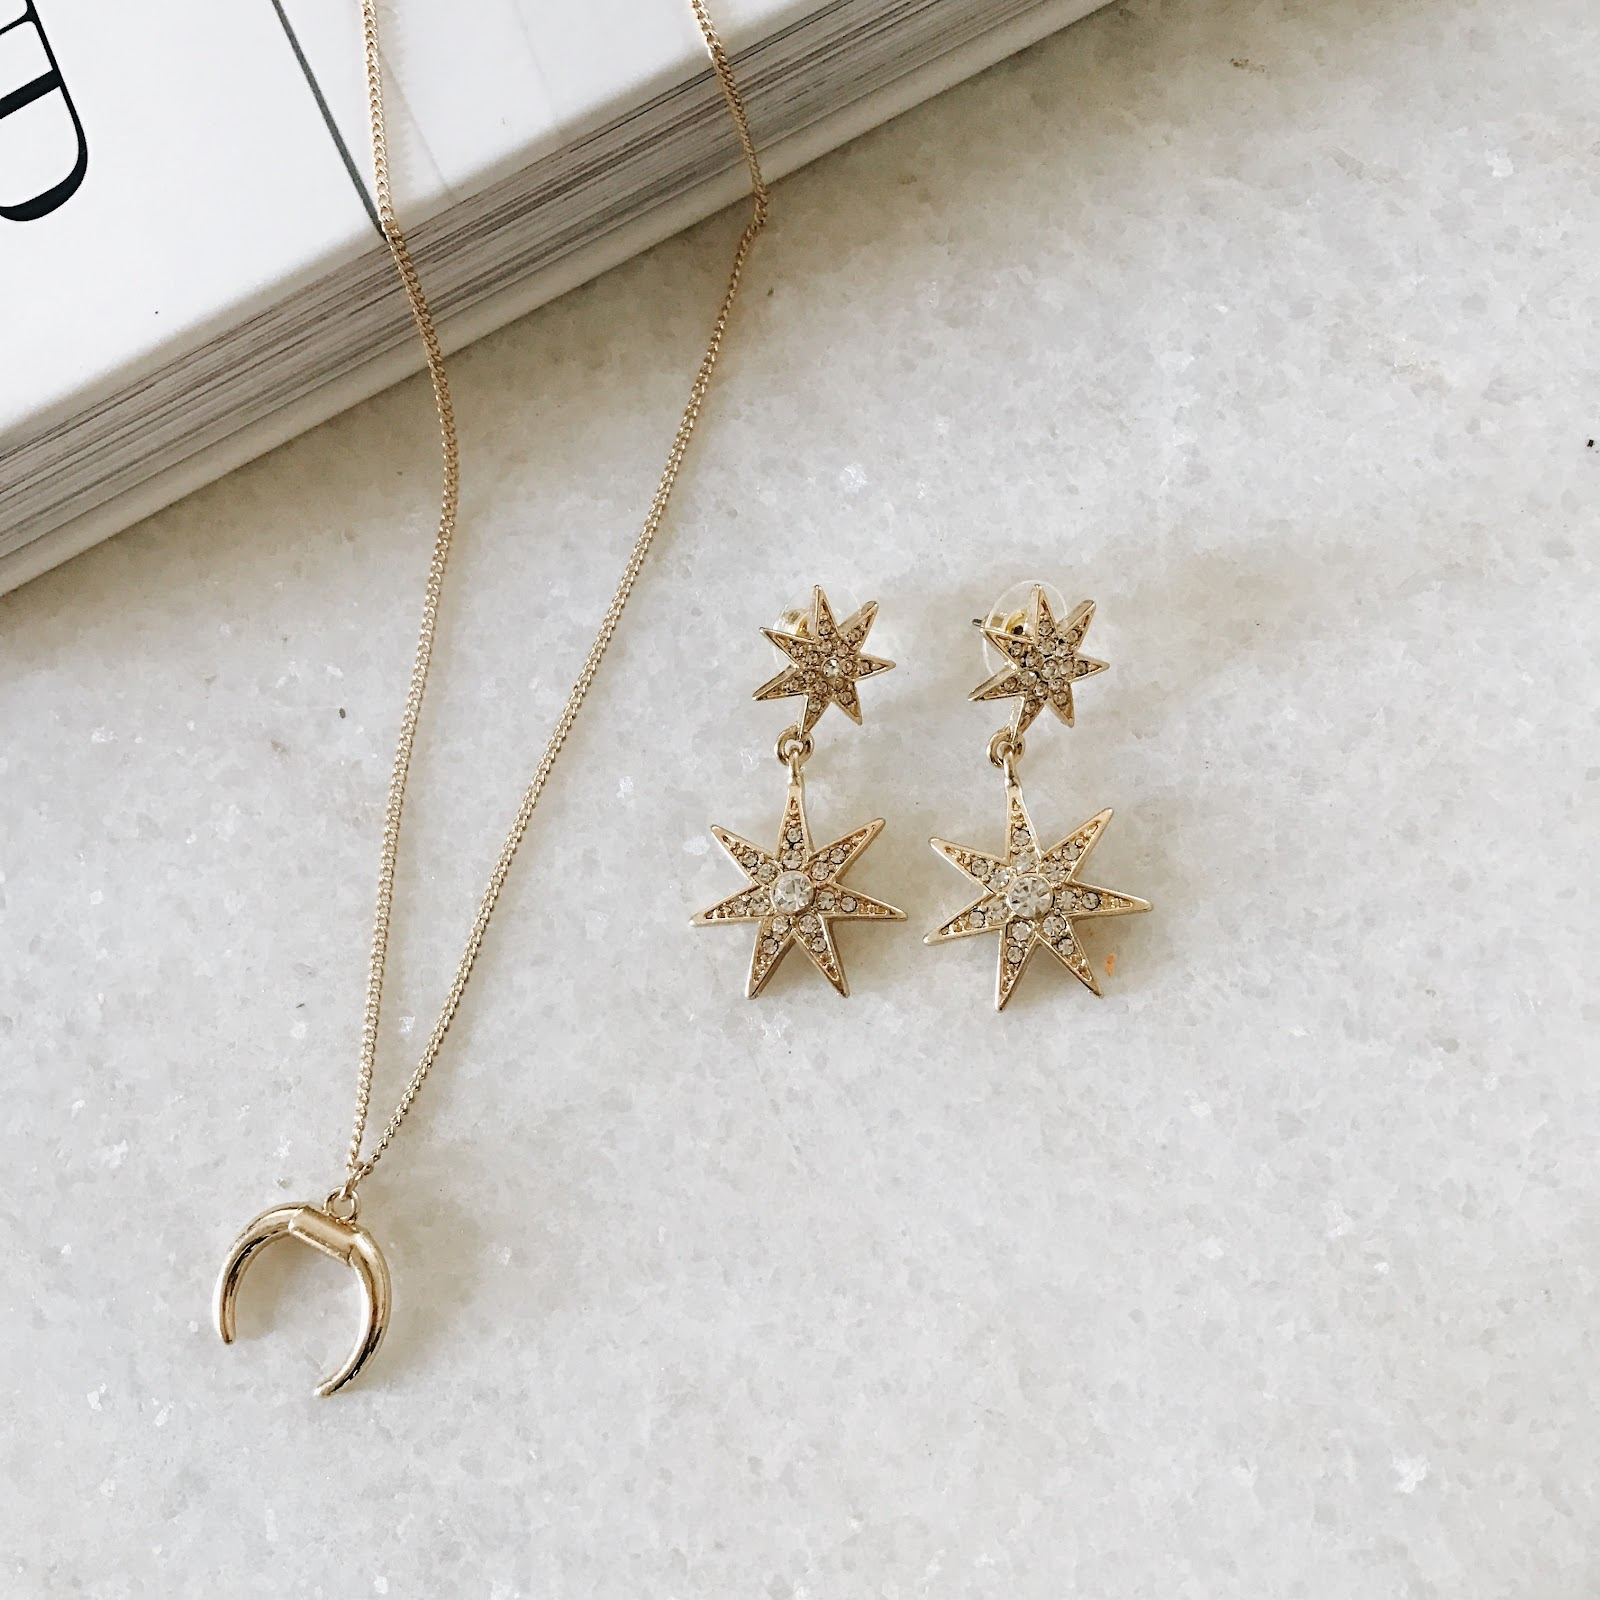 Delicate gold jewelry | horn necklace, star earrings